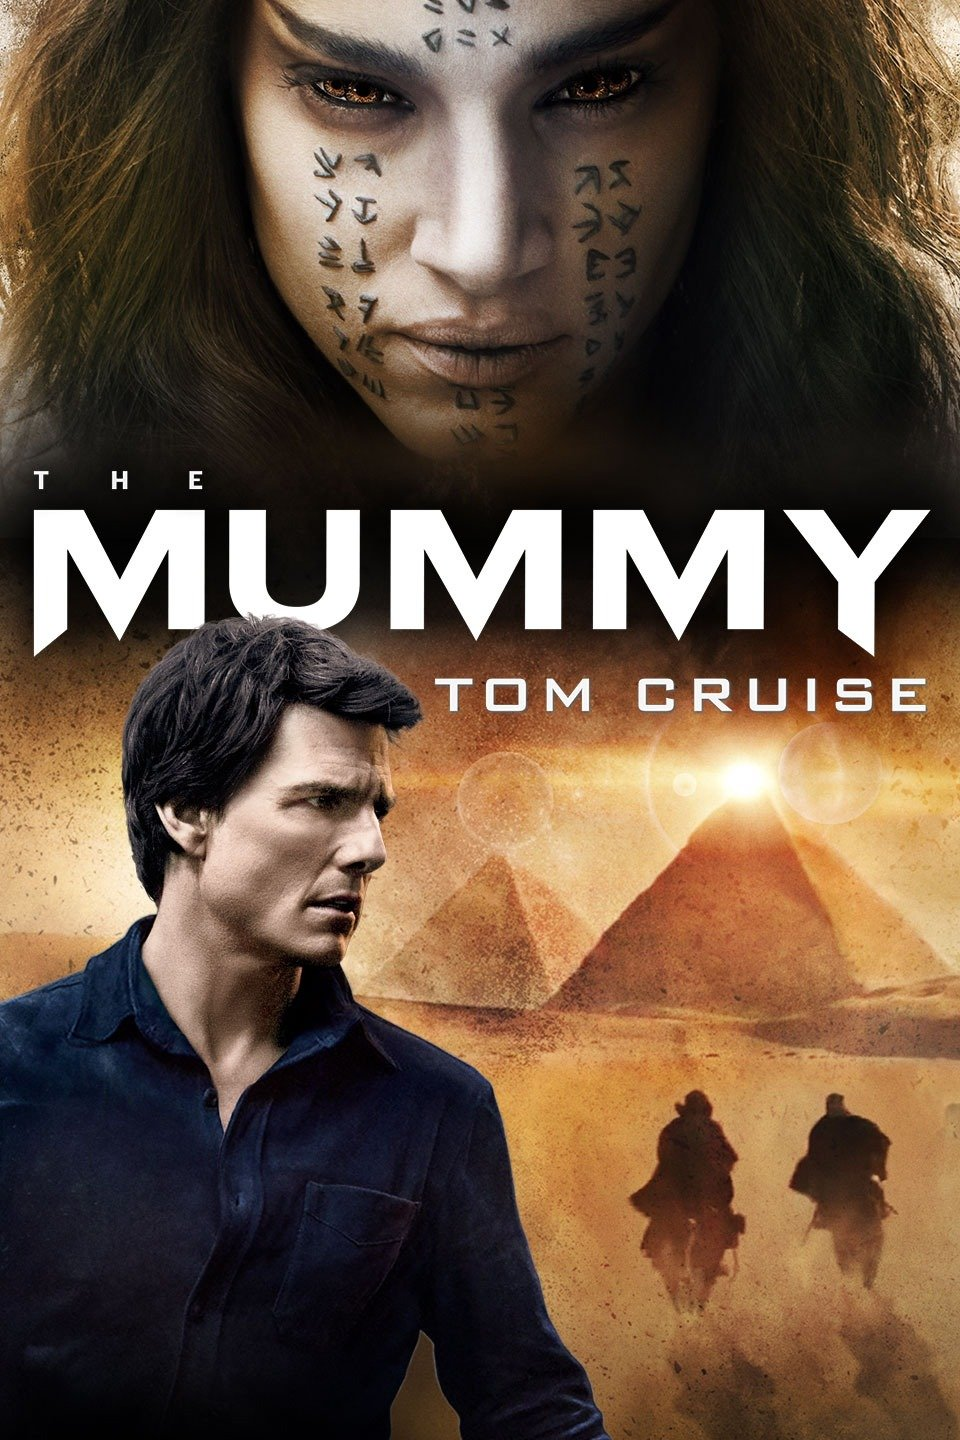 The Mummy (2017) | Horror Film Wiki | FANDOM powered by Wikia